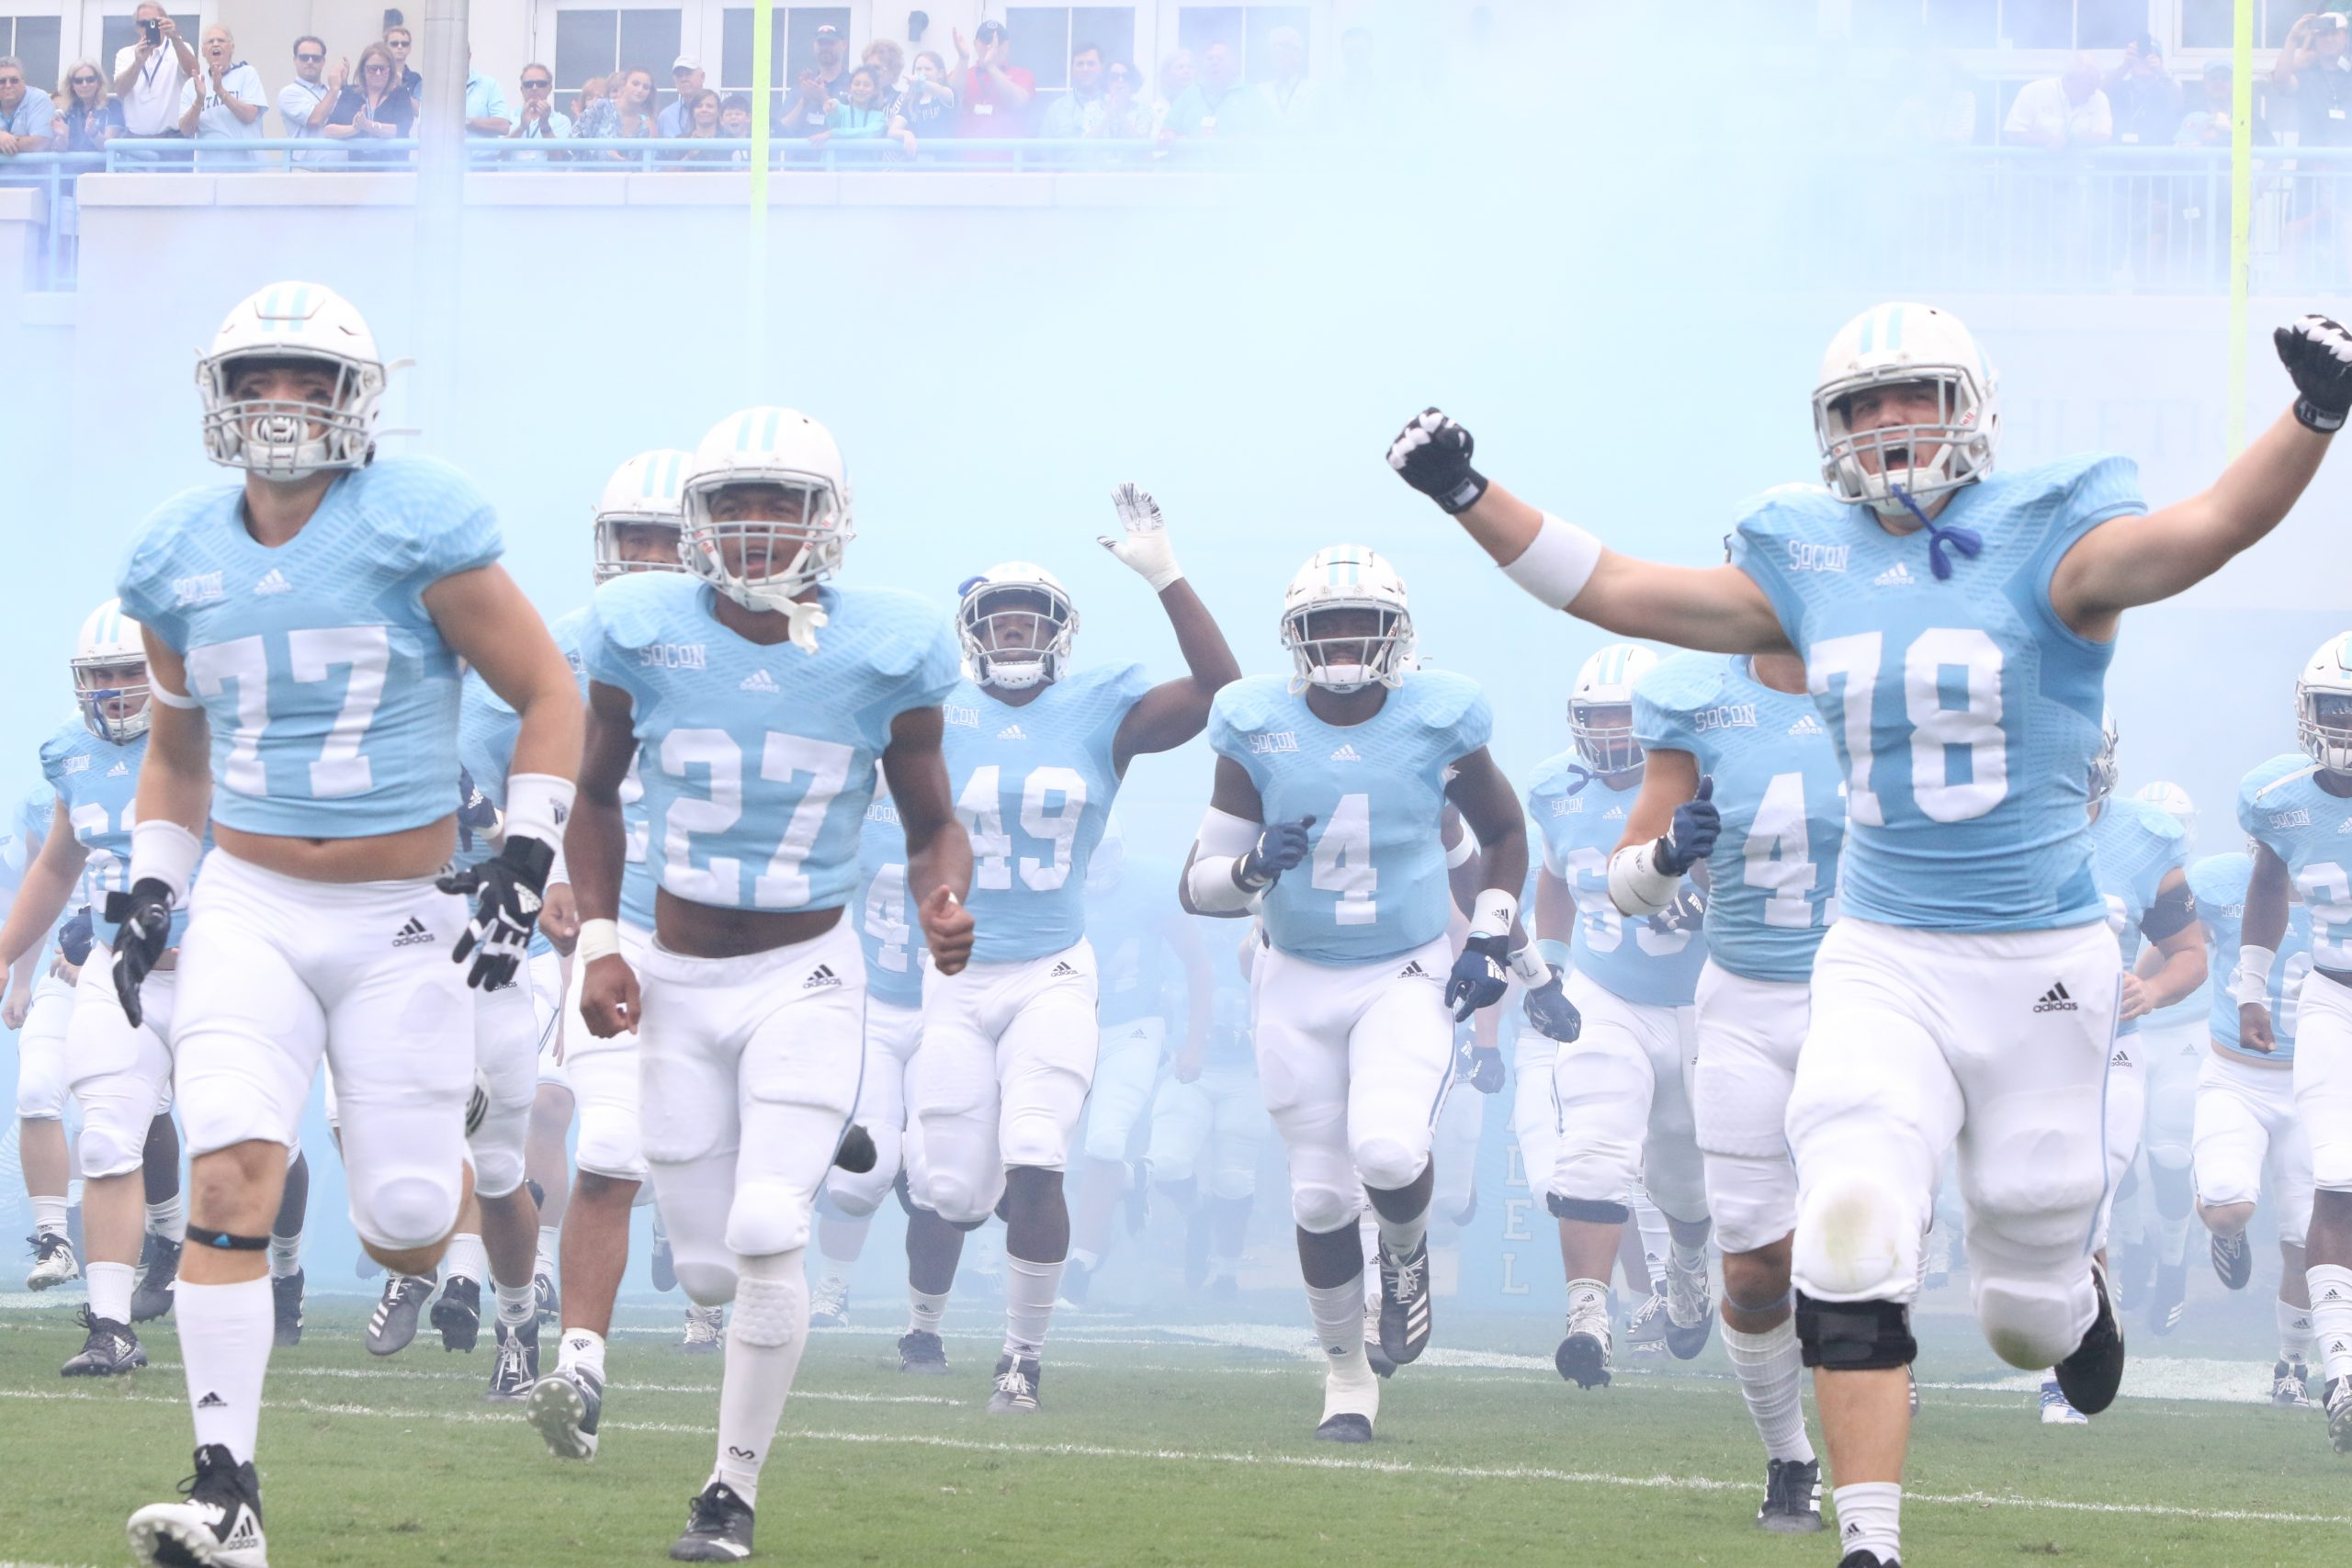 Citadel Brigadiers football team running out on field